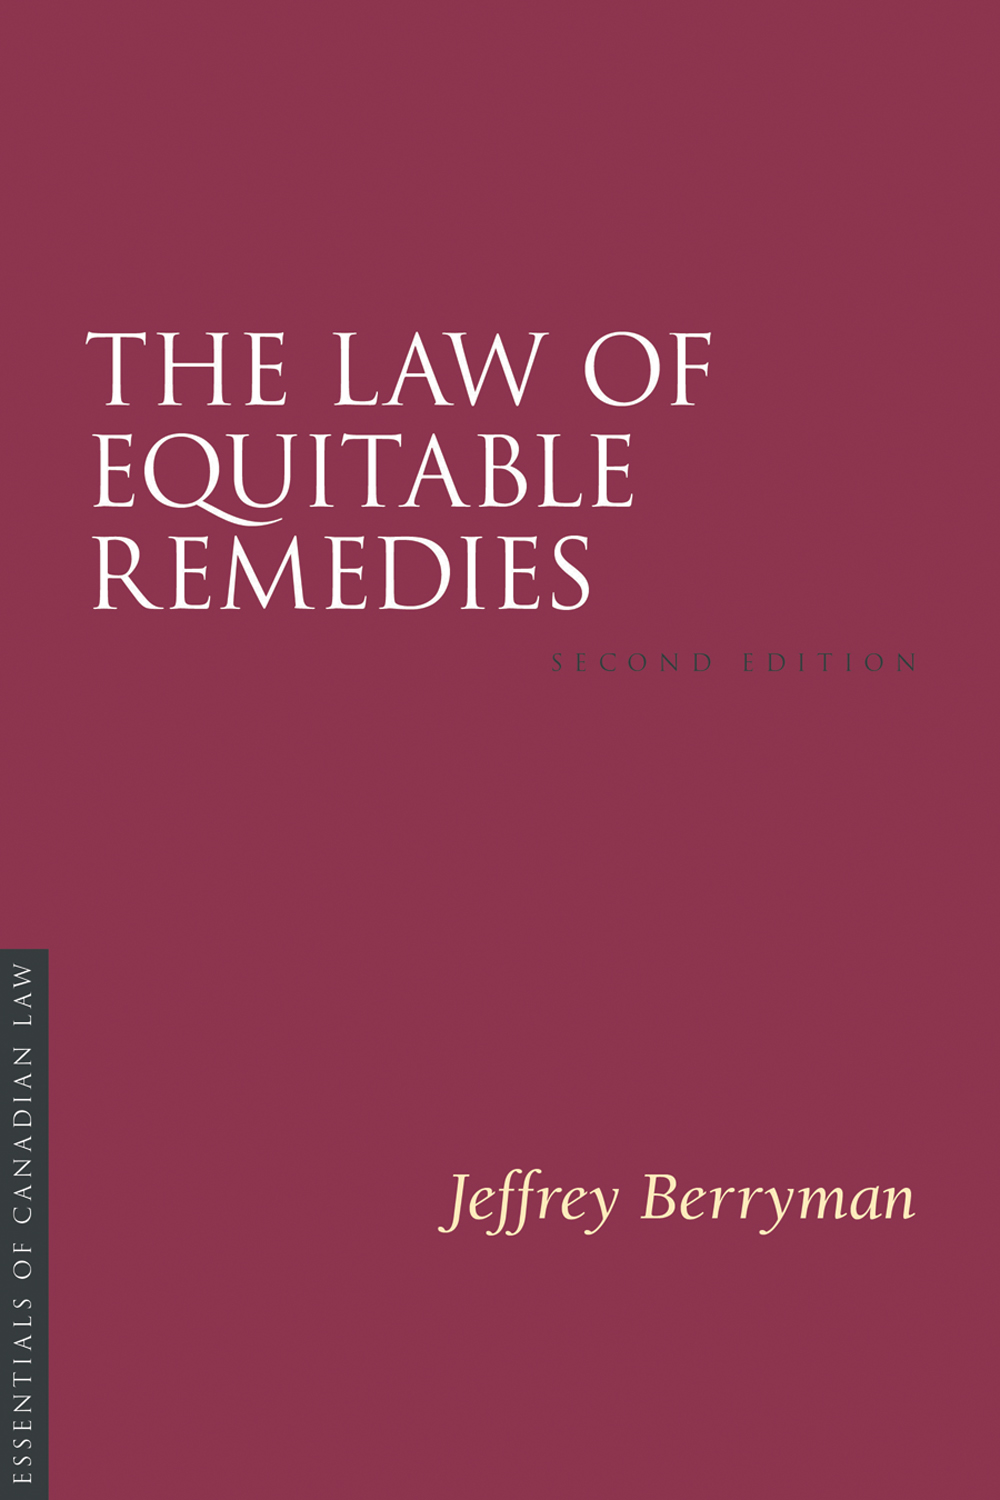 Book cover for the Law of Equitable Remedies by Jeffrey Berryman. The cover is a solid burgundy colour with a simple type treatment in capital serif letters in white.